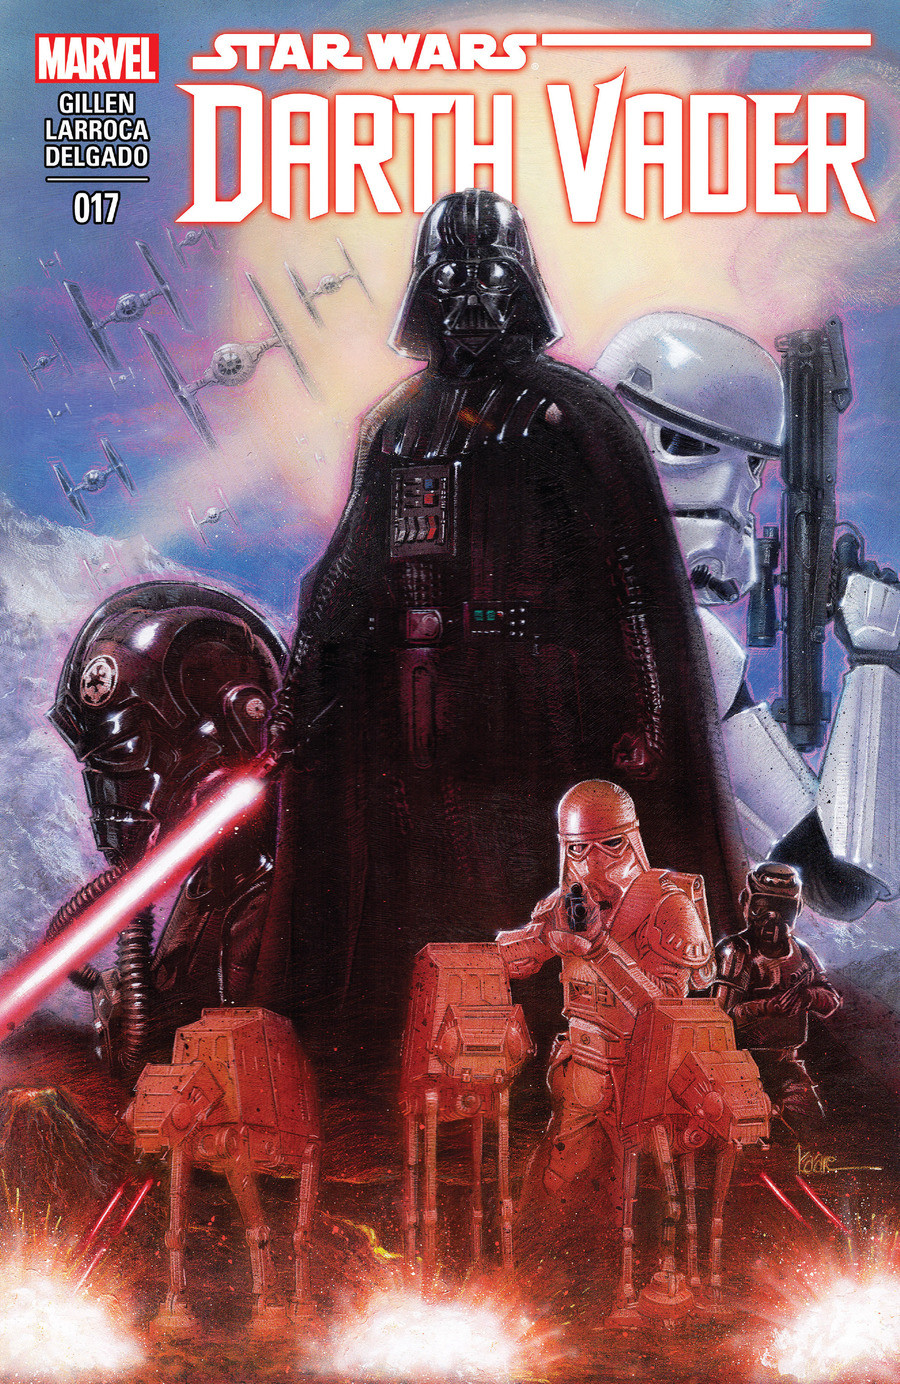 Star Wars Darth Vader issue 17. More Darth Vader, the second part of the third story arc Click the links for the first 3 issues of this comic, and the mentions